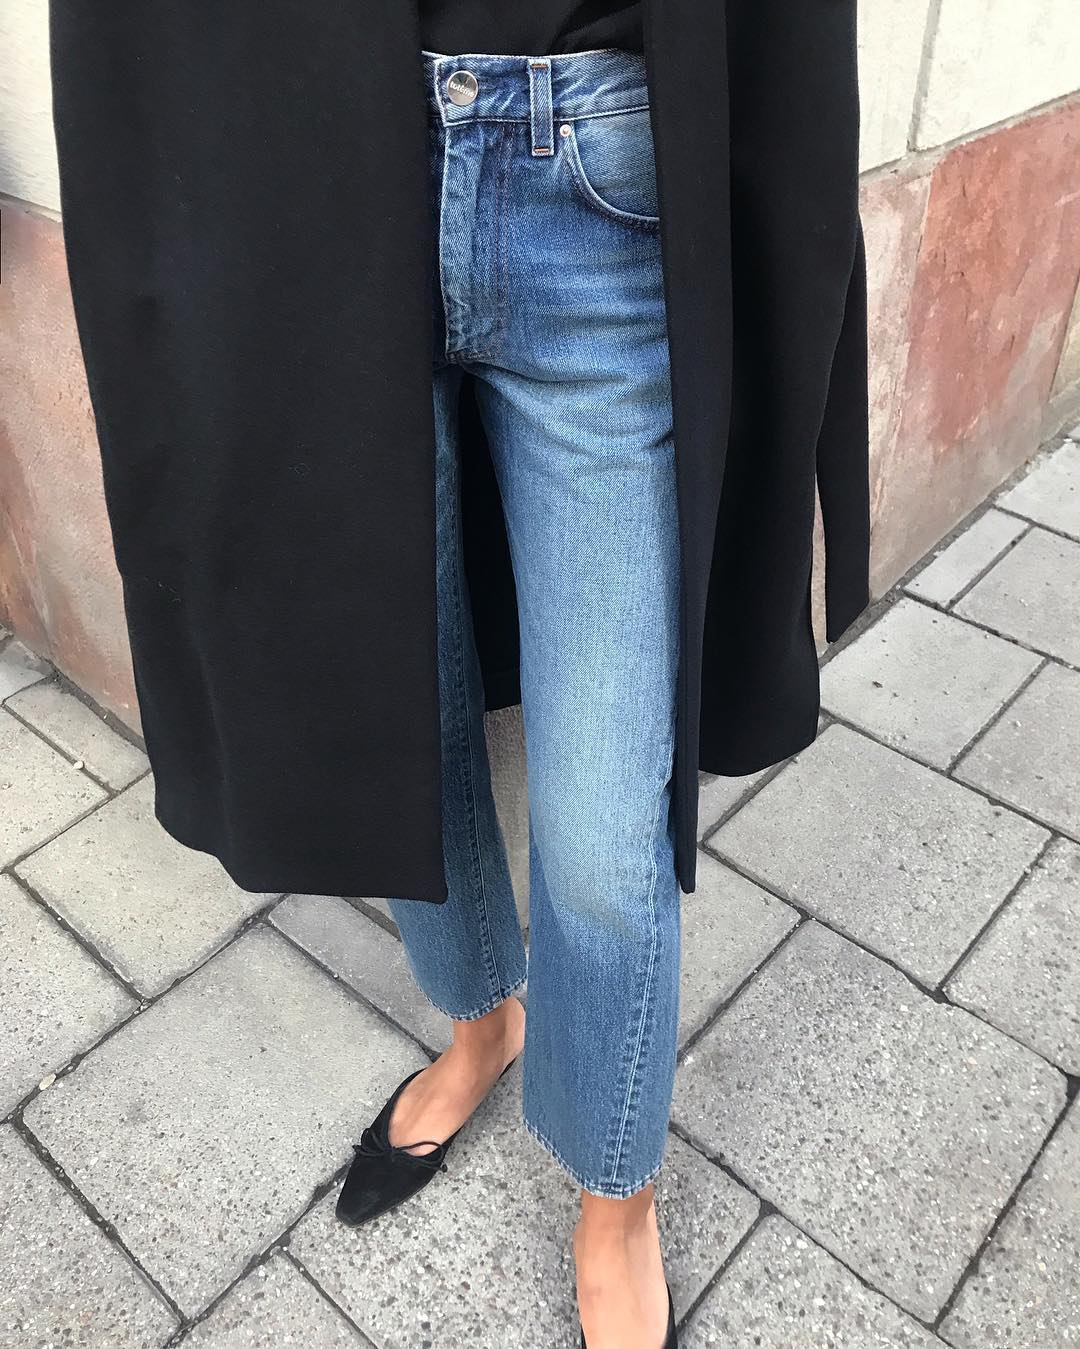 Minimalist Fall Outfit Inspiration — Black Coat, Jeans, and Manolo Blahnik Mule Flats